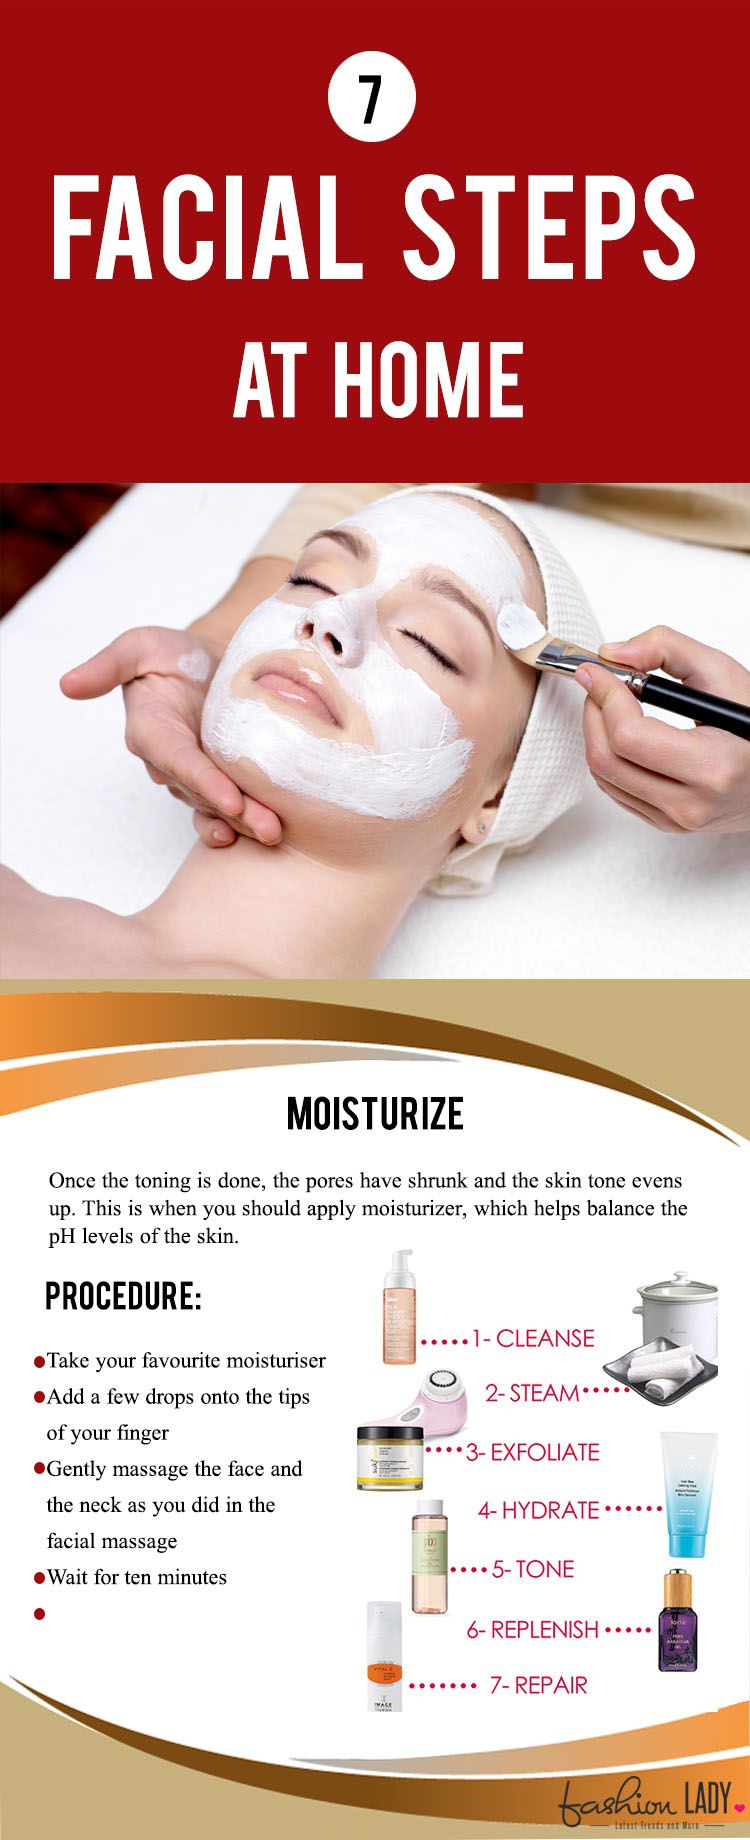 9 Facial Steps At Home  Facial steps at home, Facial tips, How to